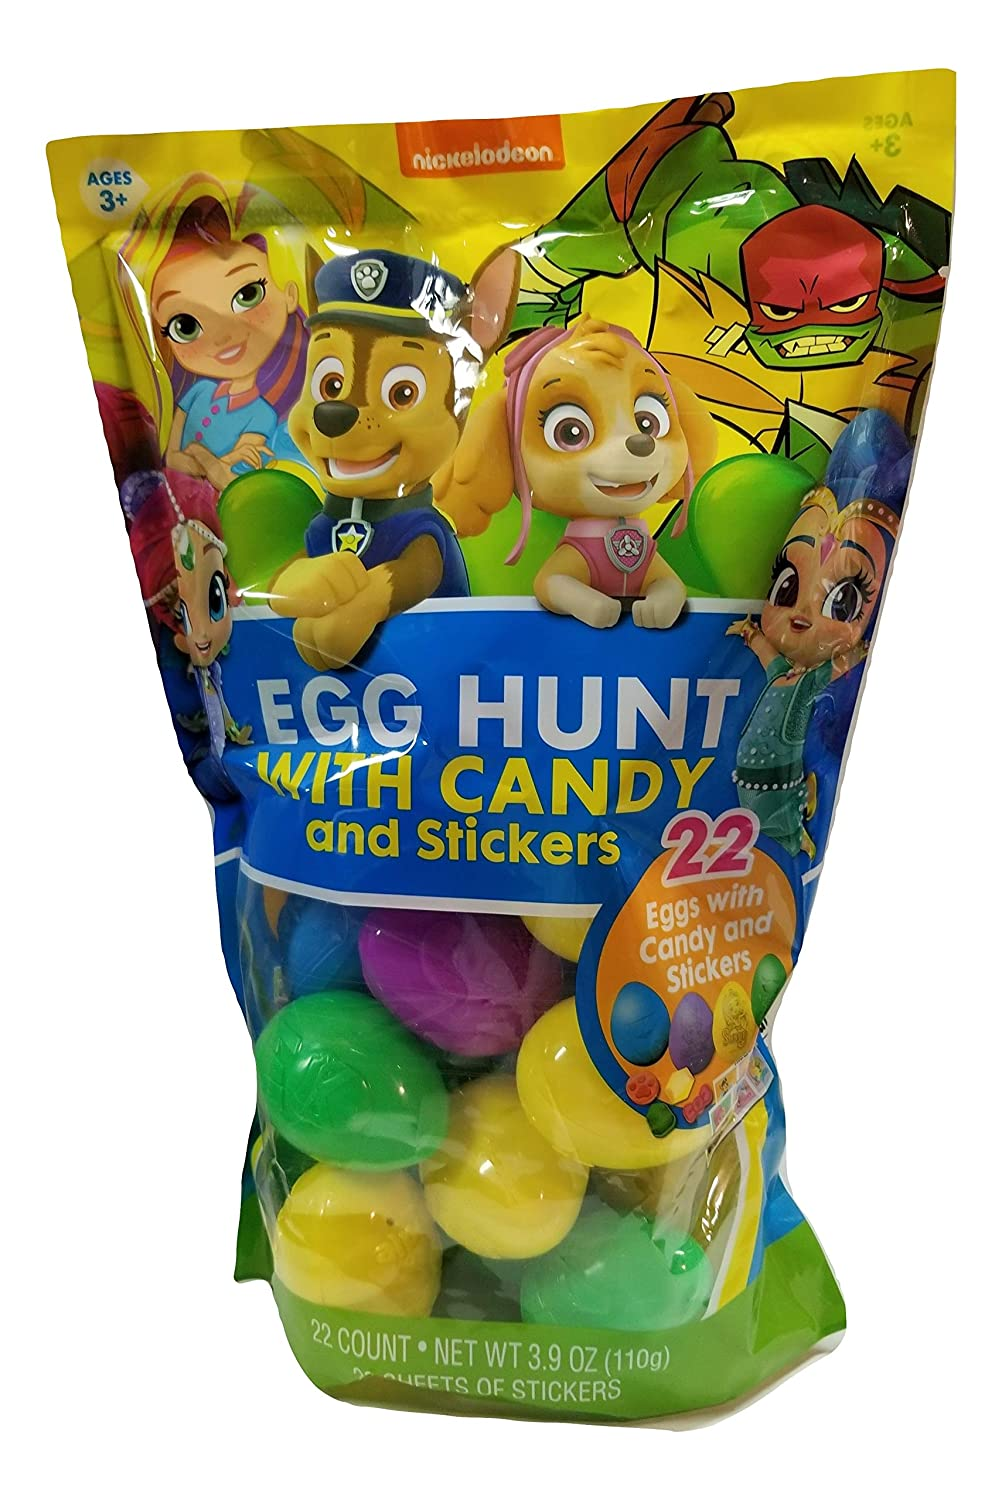 Frankford Nickelodeon Paw Patrol,Sunnyday Shimmer /& Shine and Teenage Ninja Turtle Easter Egg Hunt Eggs Filled with Candy and Stickers!